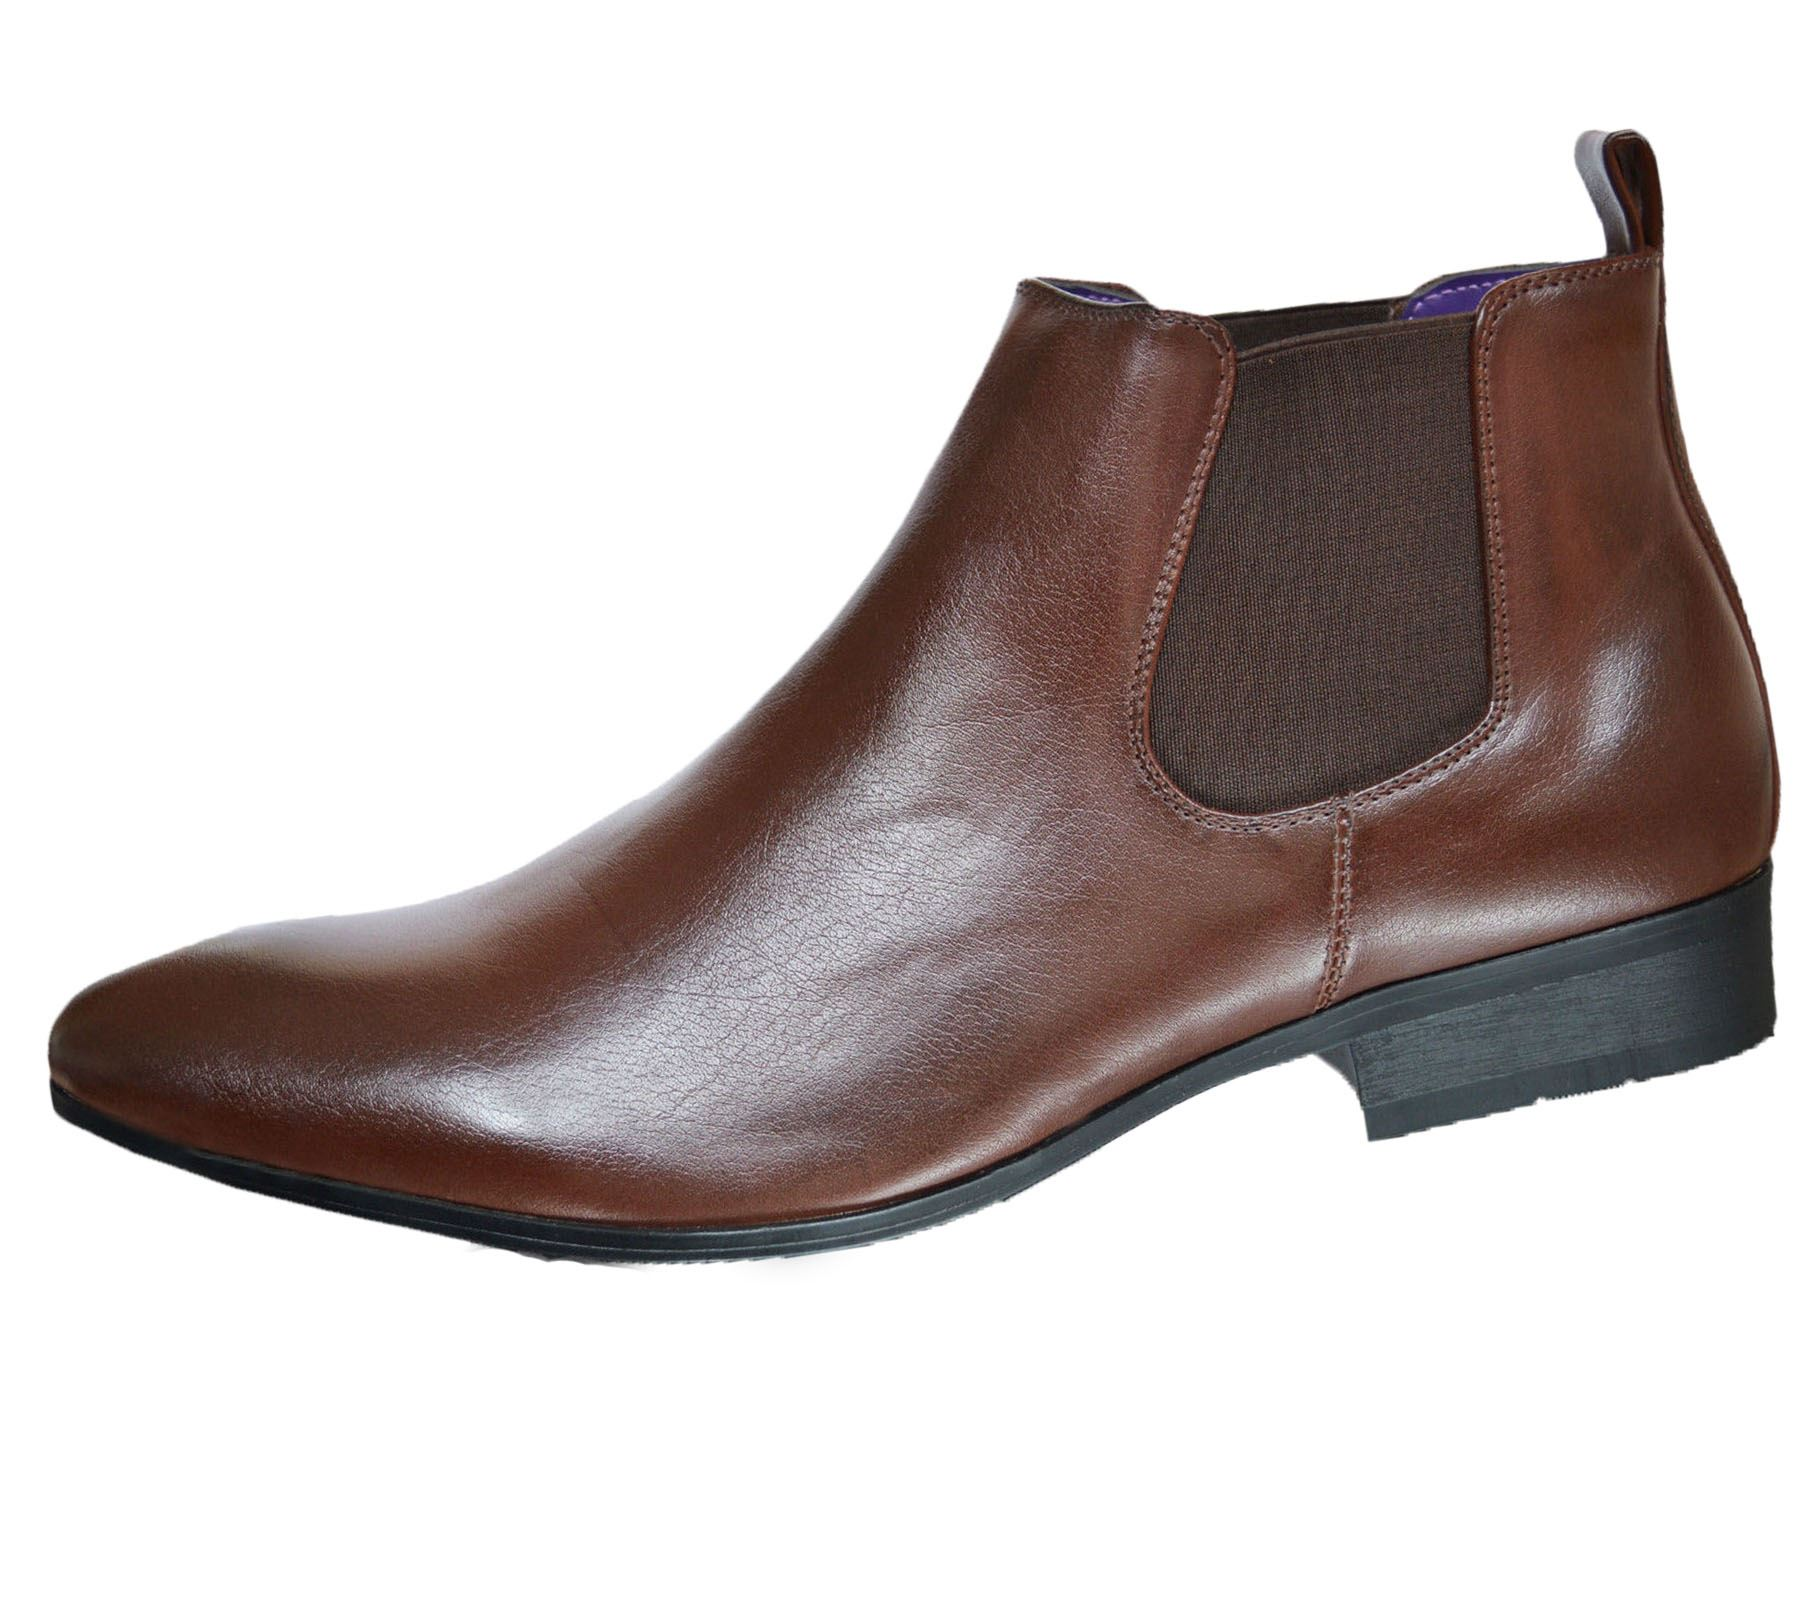 Mens-Chelsea-Boots-High-Top-Gusset-Synthetic-Leather-Shoes thumbnail 11